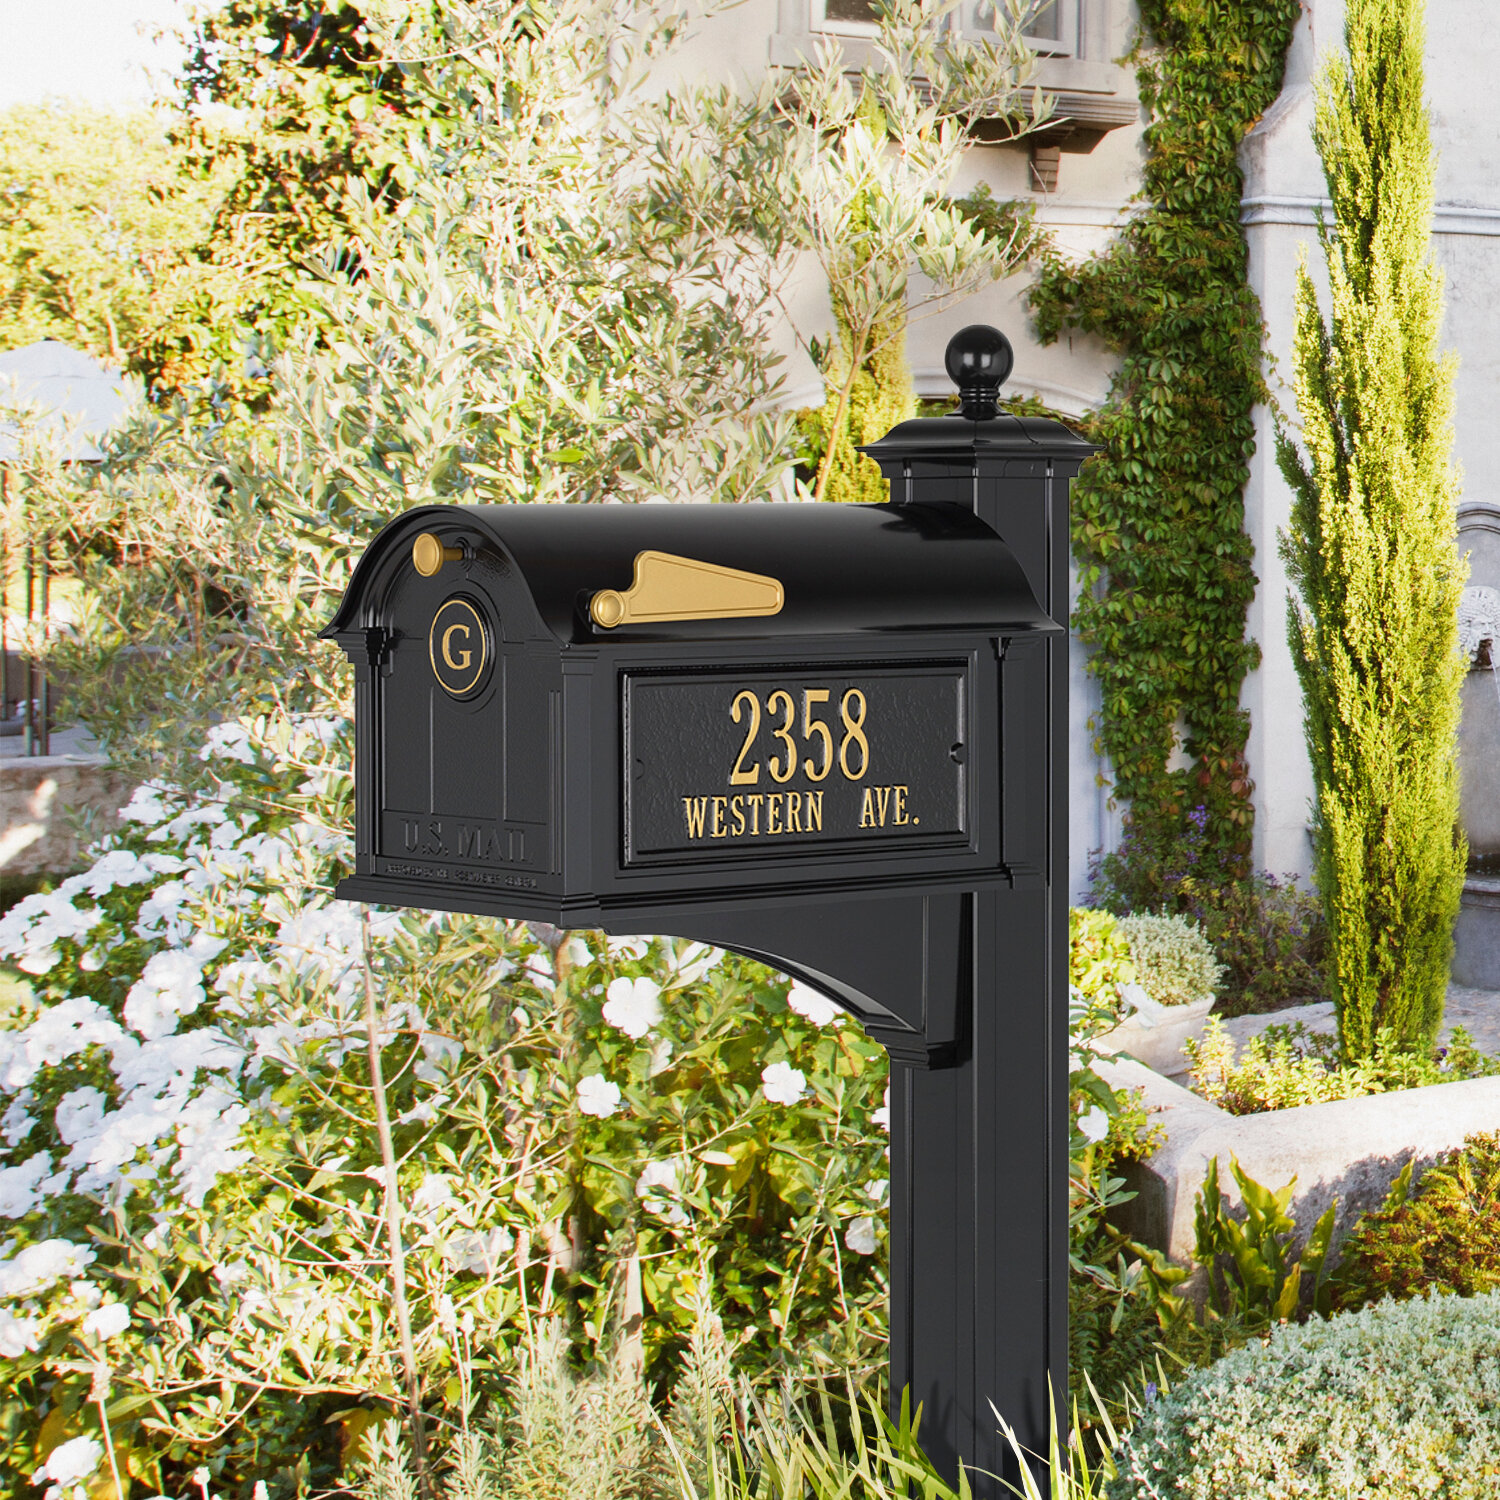 Small 11 h x 7 w Inches Rustic Style White Post MailBox Wall Mounted Design